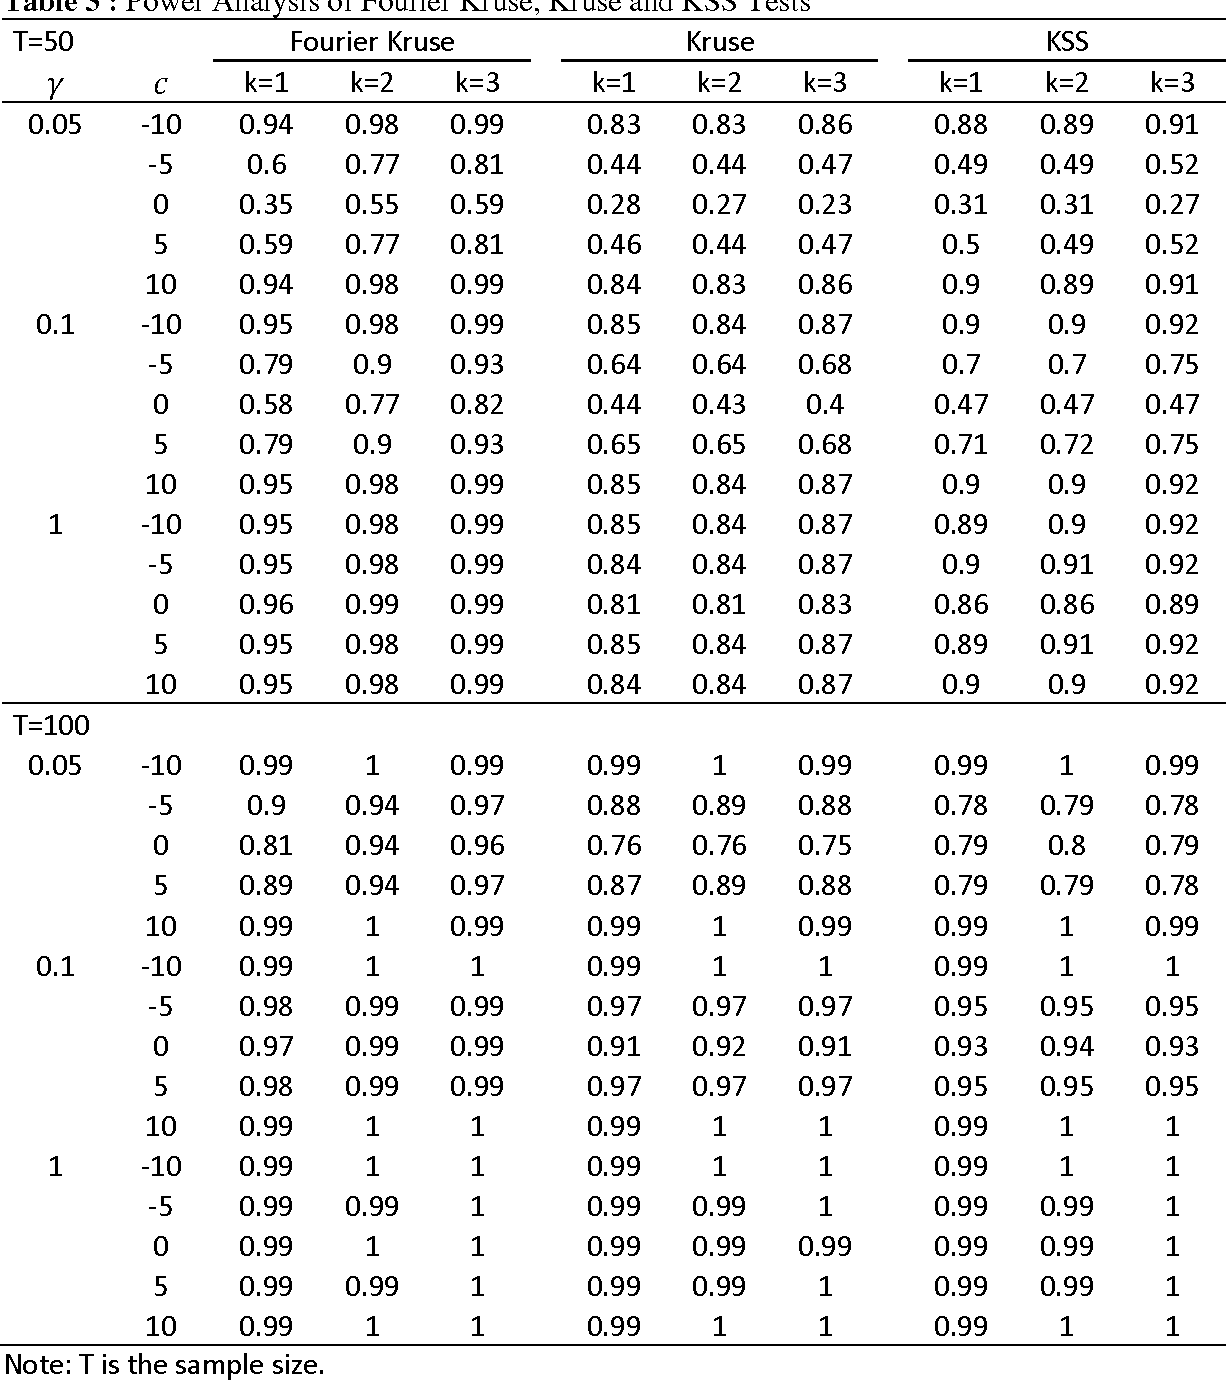 Table 3 from A New Nonlinear Unit Root Test with Fourier Function